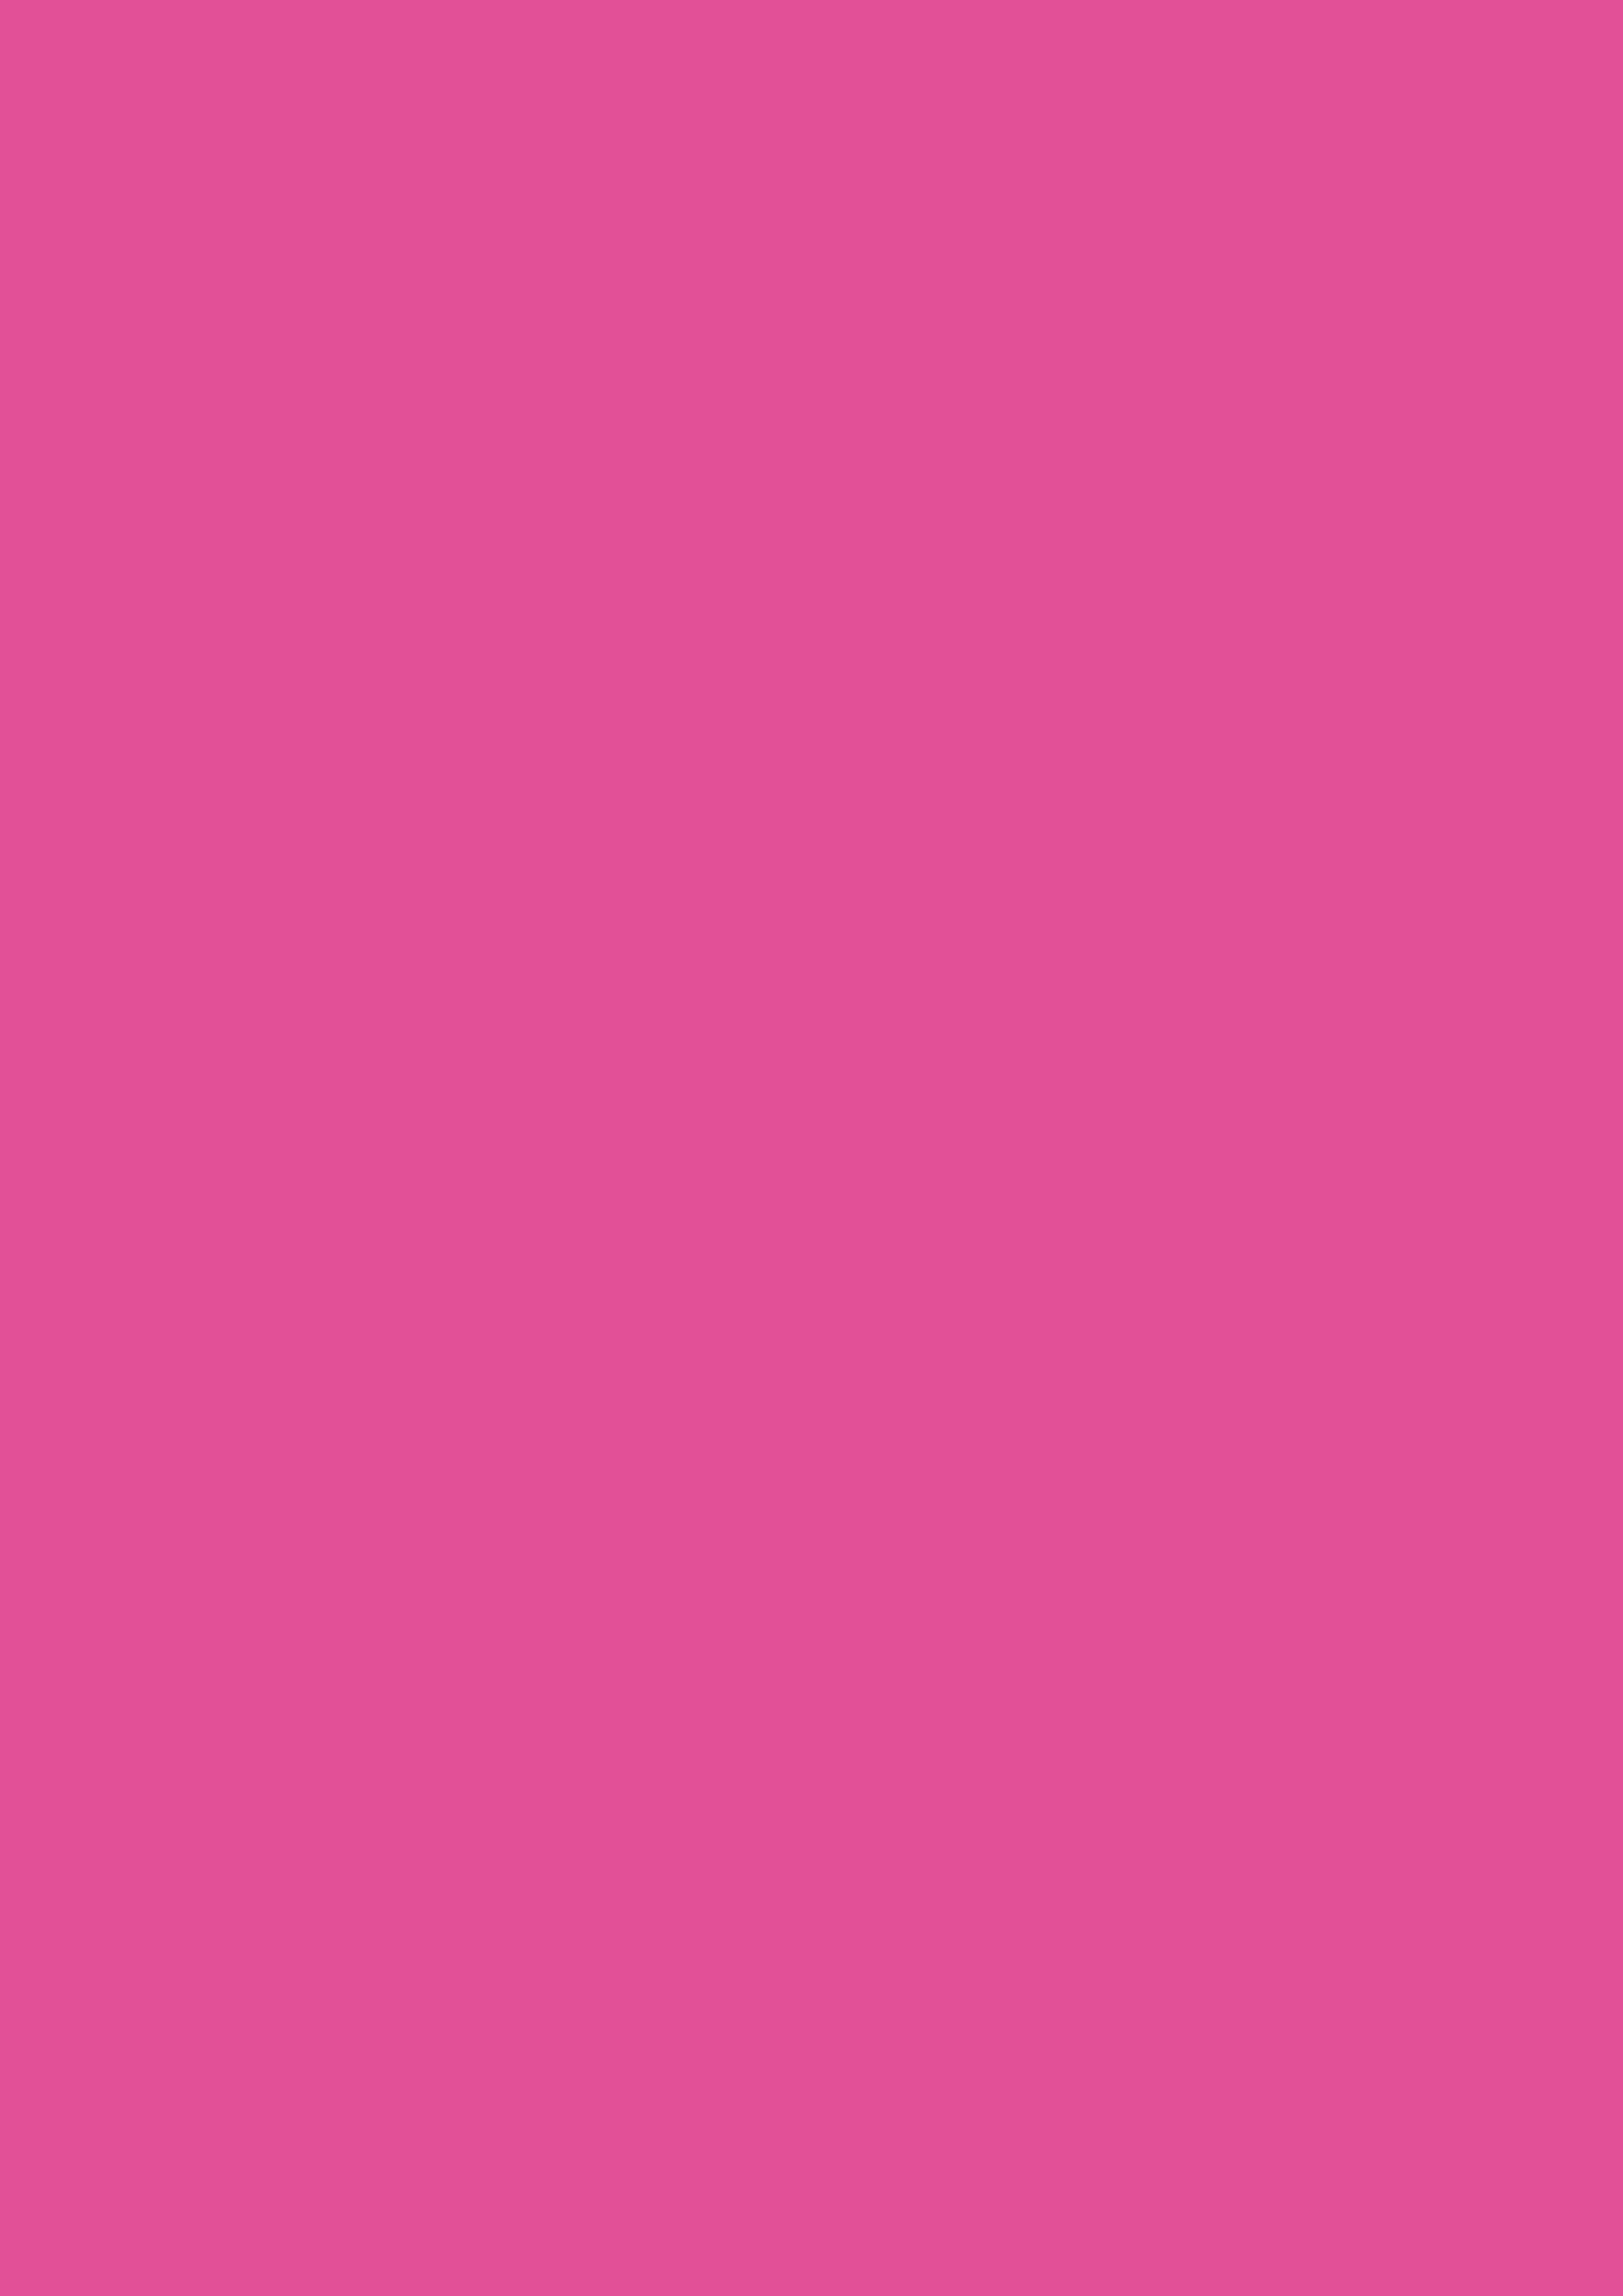 2480x3508 Raspberry Pink Solid Color Background